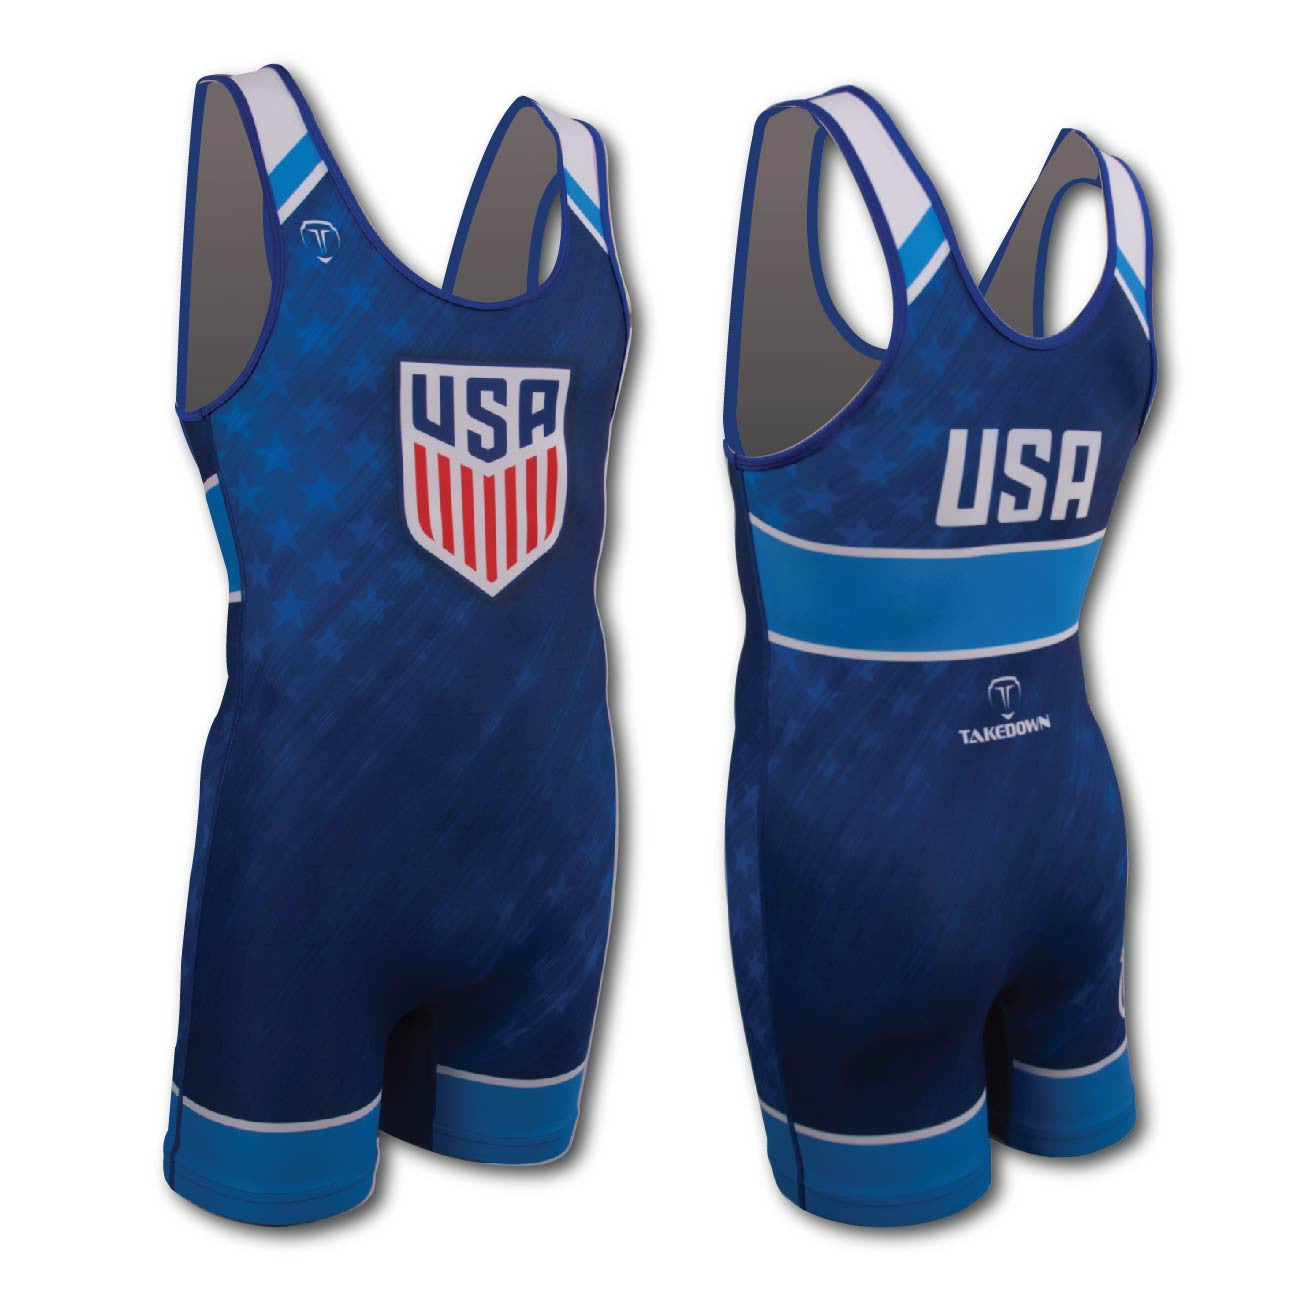 UWW Singlet, Freestyle Greco Singlet, Red Blue Singlet